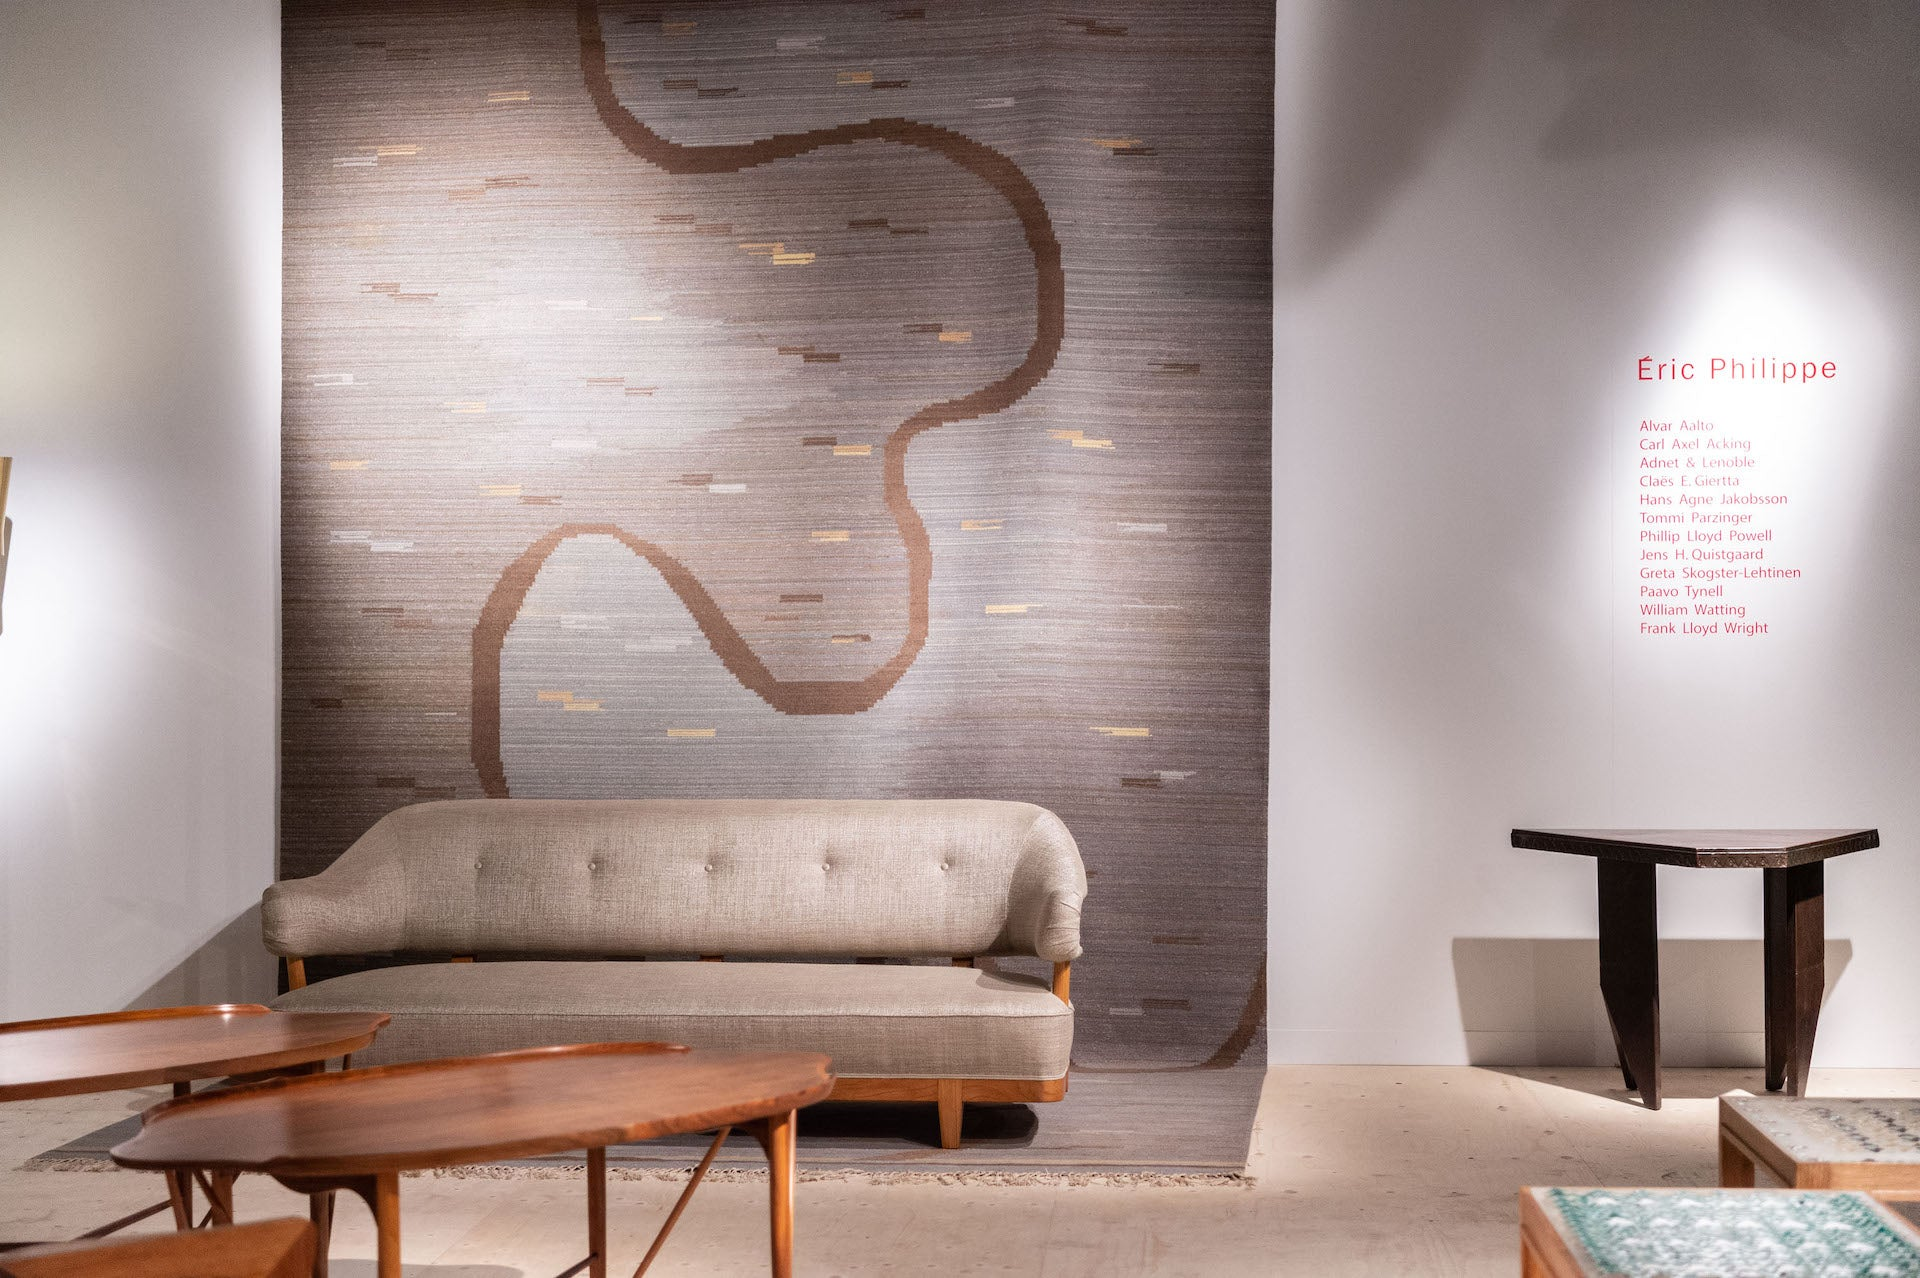 """Scandinavian Carpet & Acking Sofa, presented by Galerie Eric Philippe. """"The presentation of these 2 pieces together is a knockout."""" Photo © World Red Eye"""